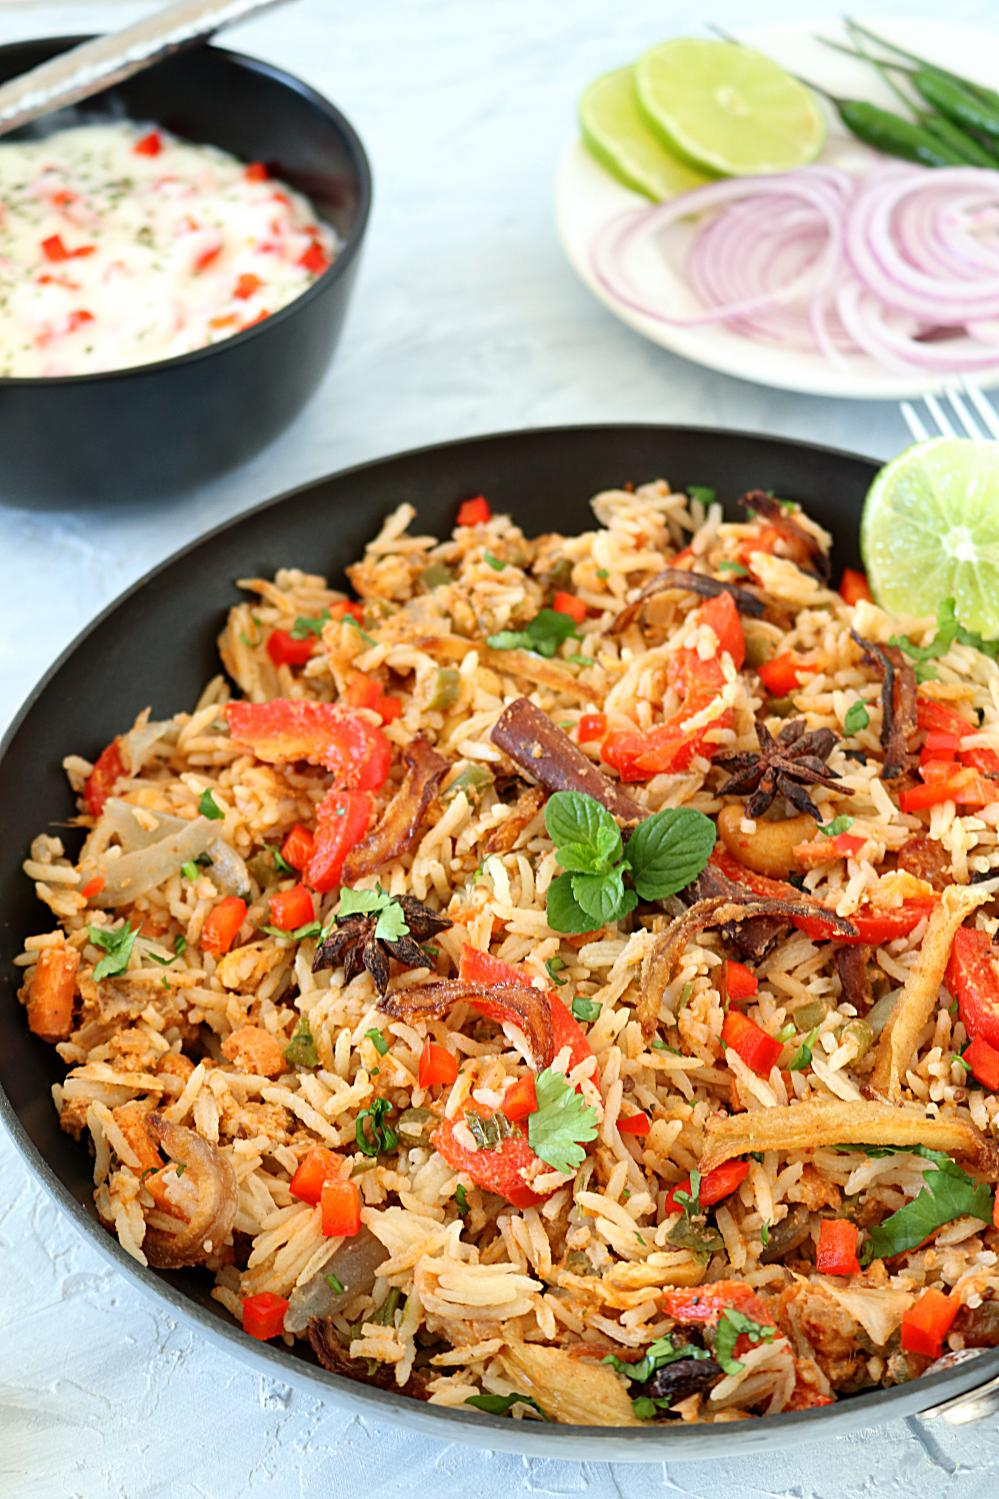 Shahi vegetable biryani- Ruchiskitchen